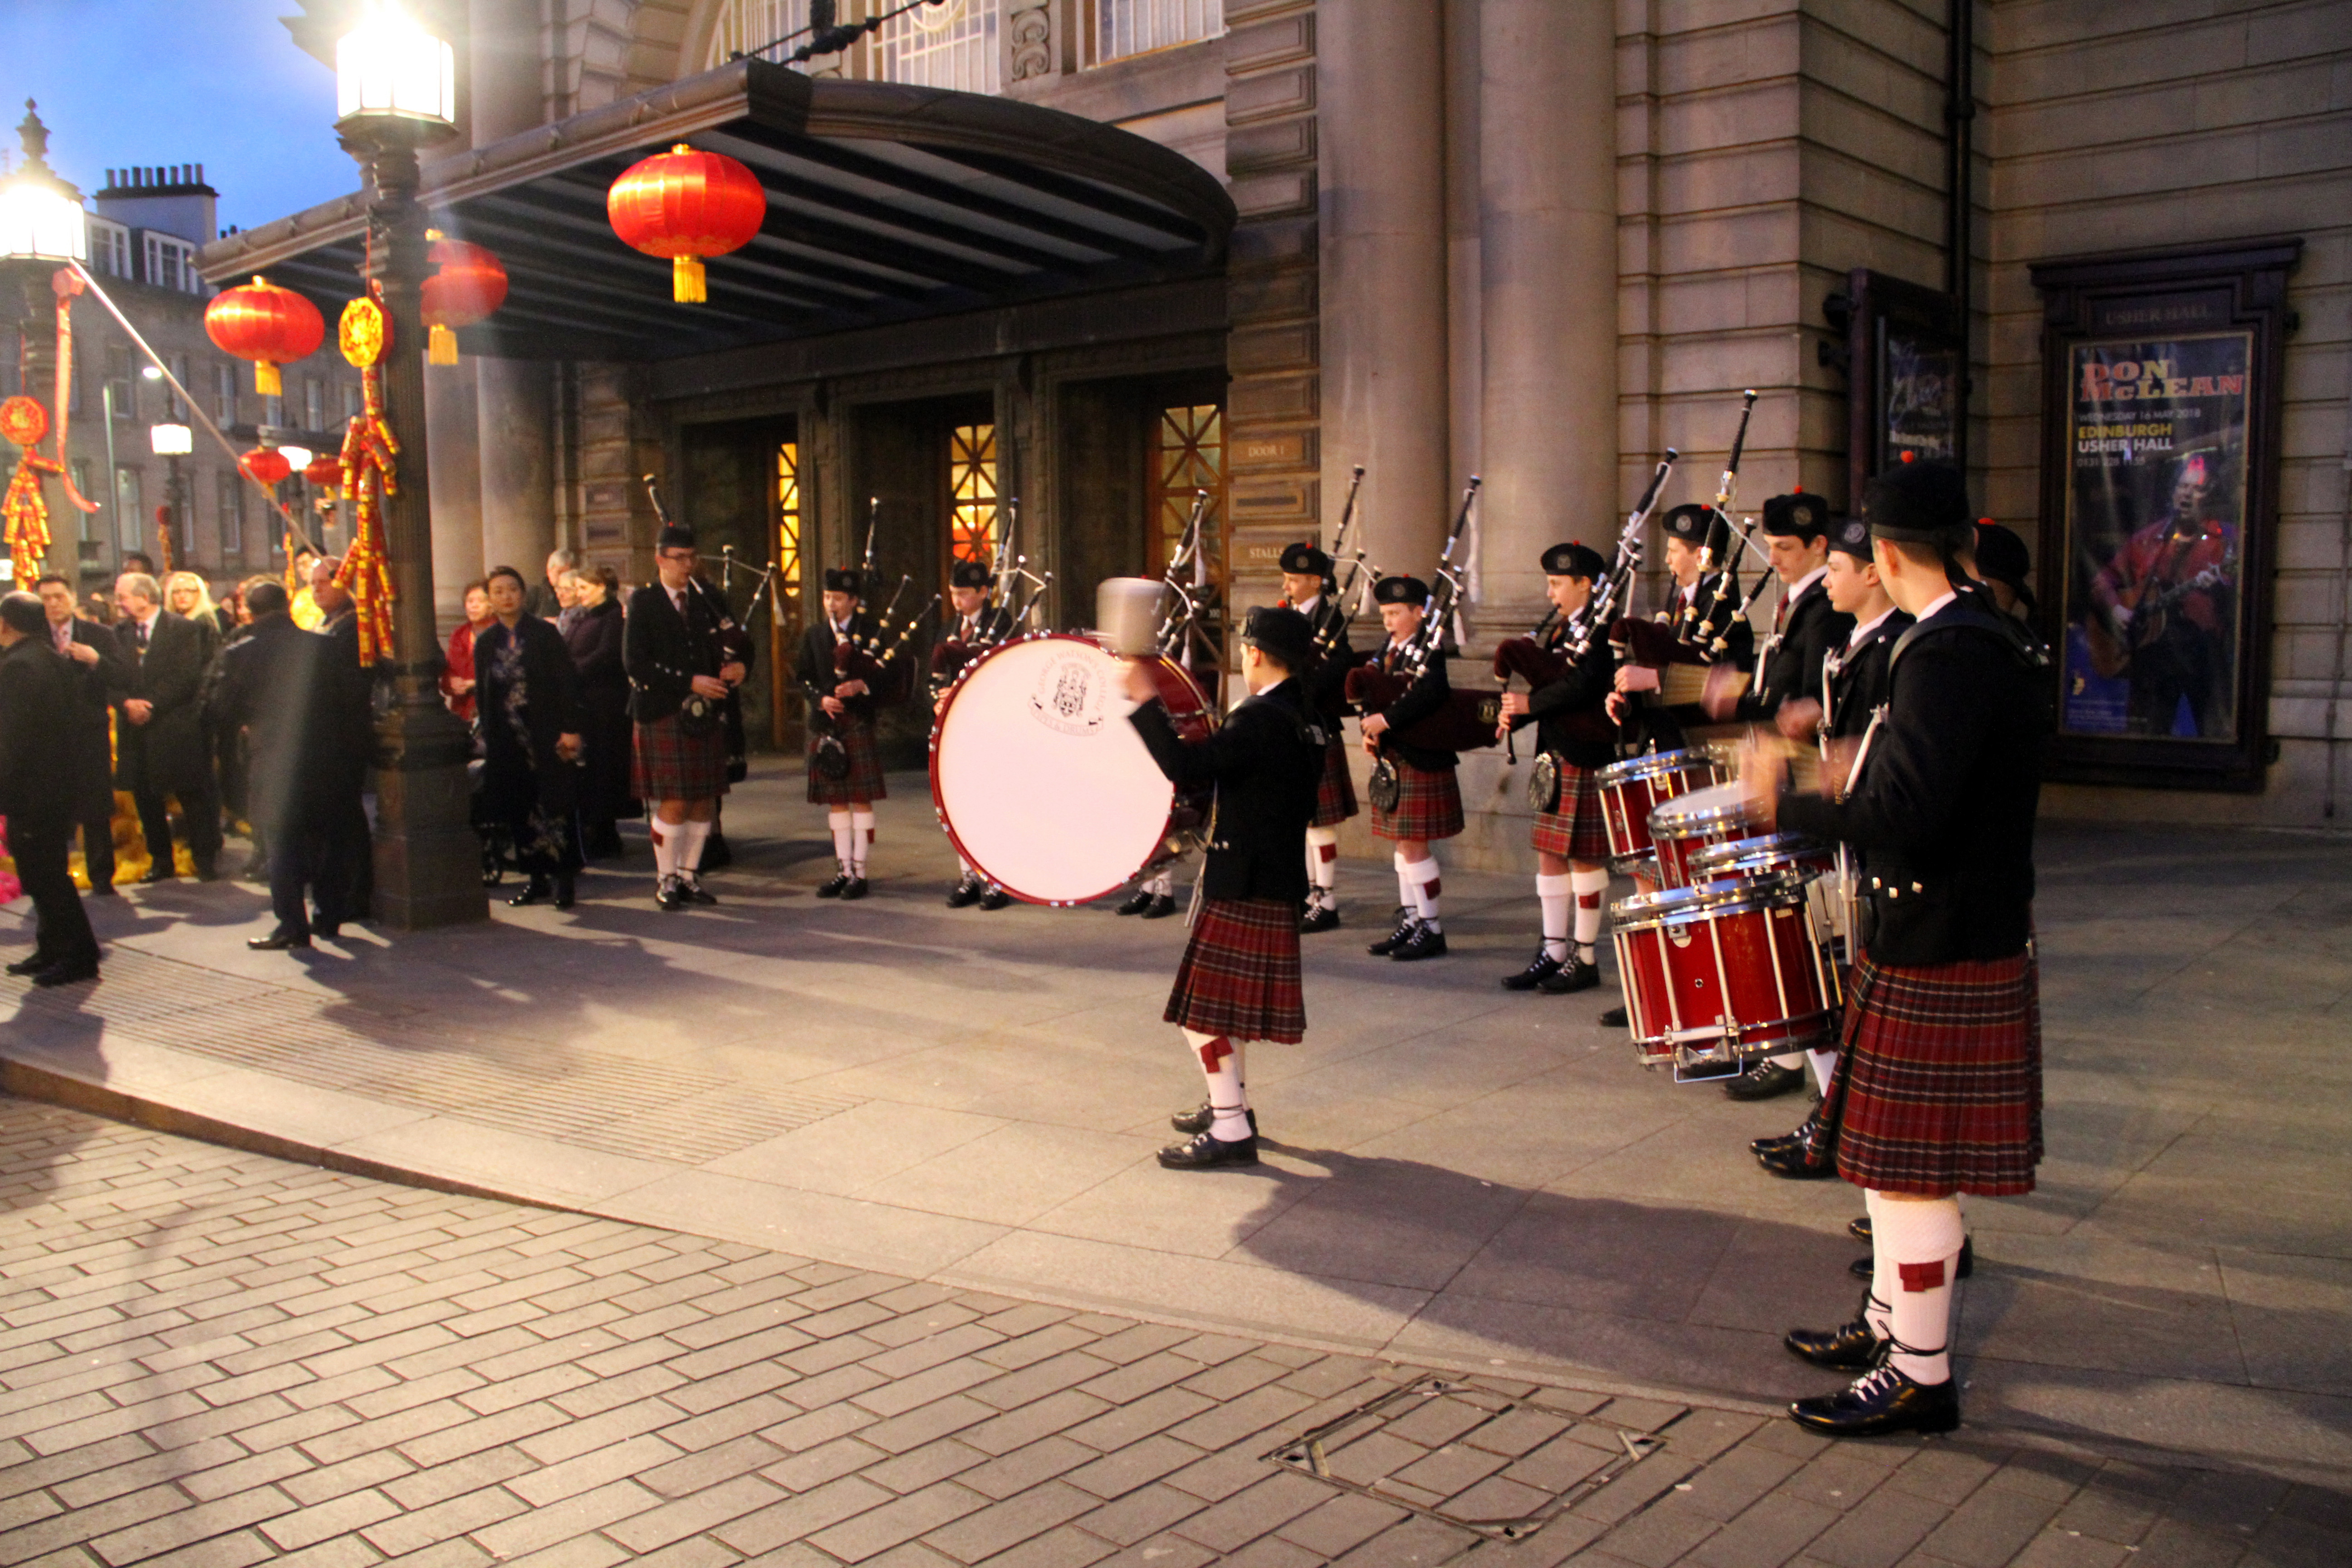 2018 chinese new year reception and concert held in edinburgh on the evening of 22th of february usher hall was glittering at night with decorations of chinese red lanterns the firecrackers were crackling and malvernweather Image collections